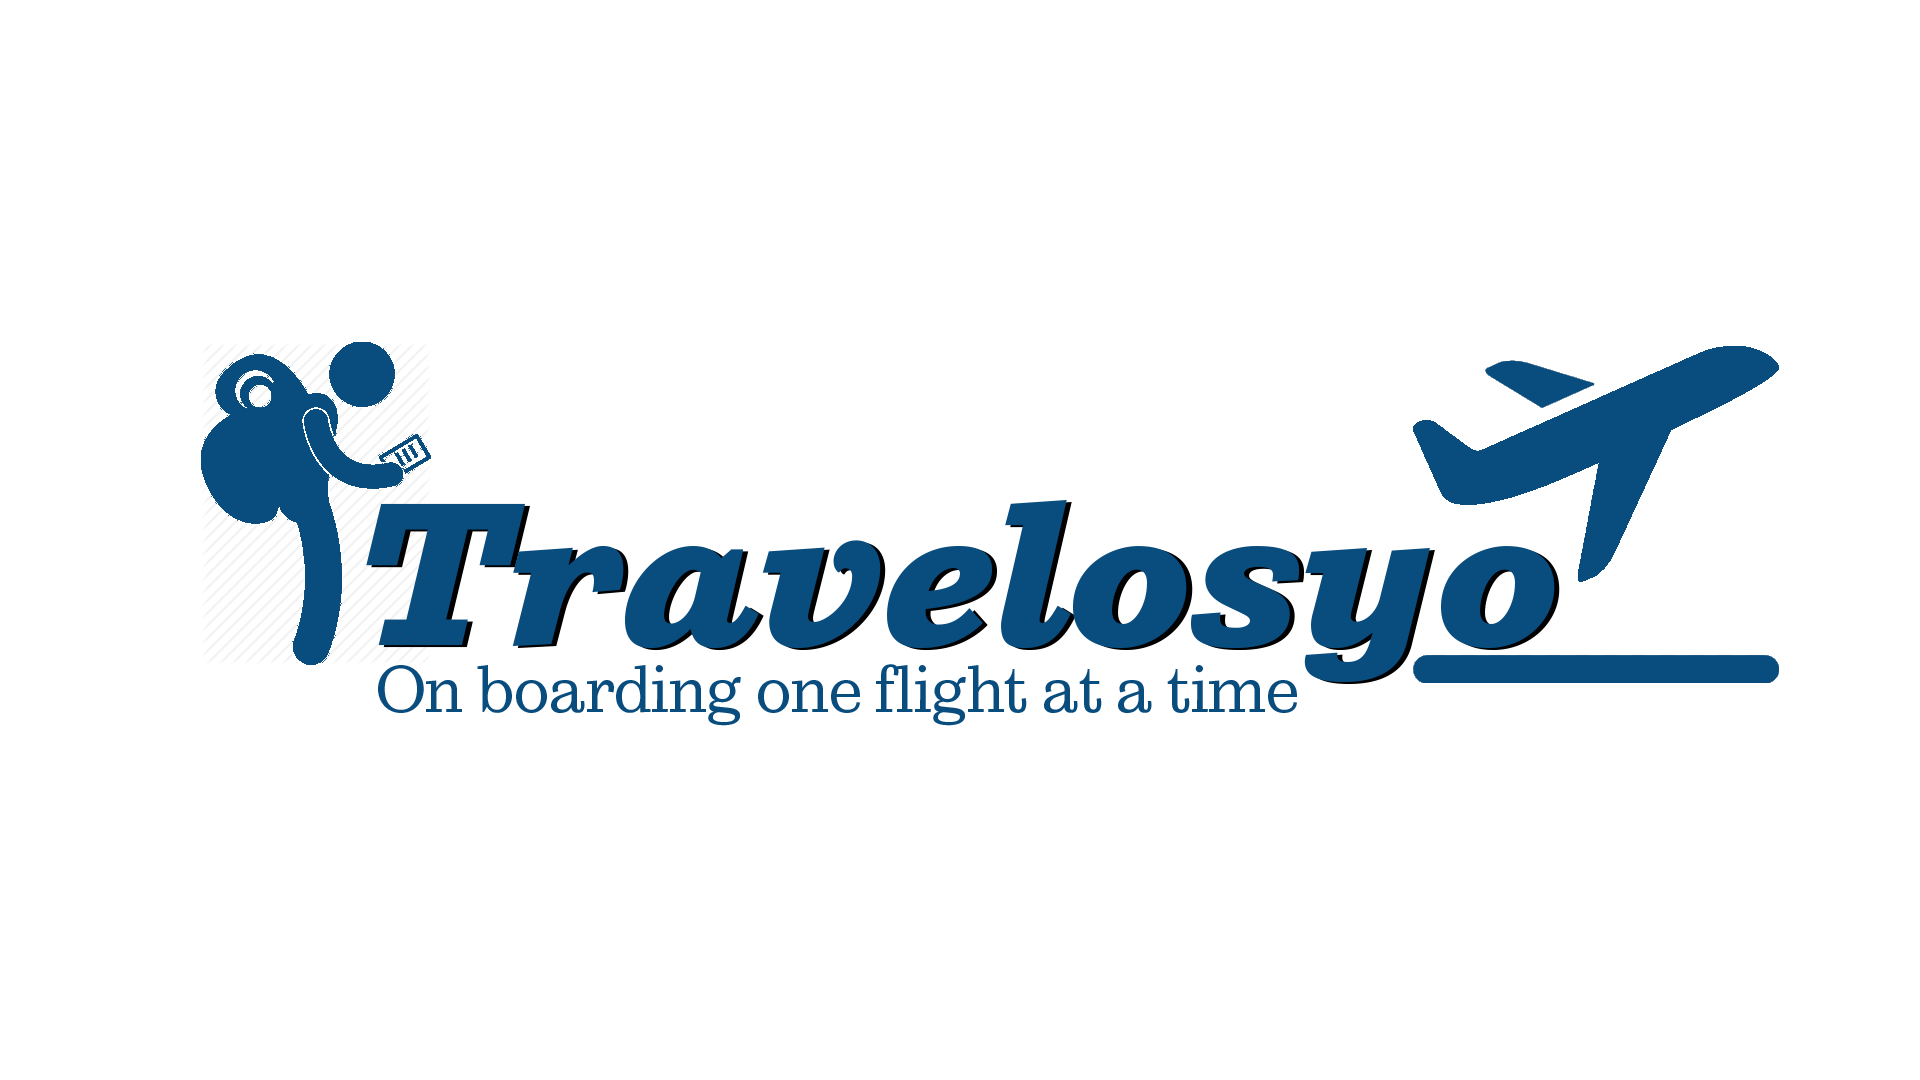 Travelosyo